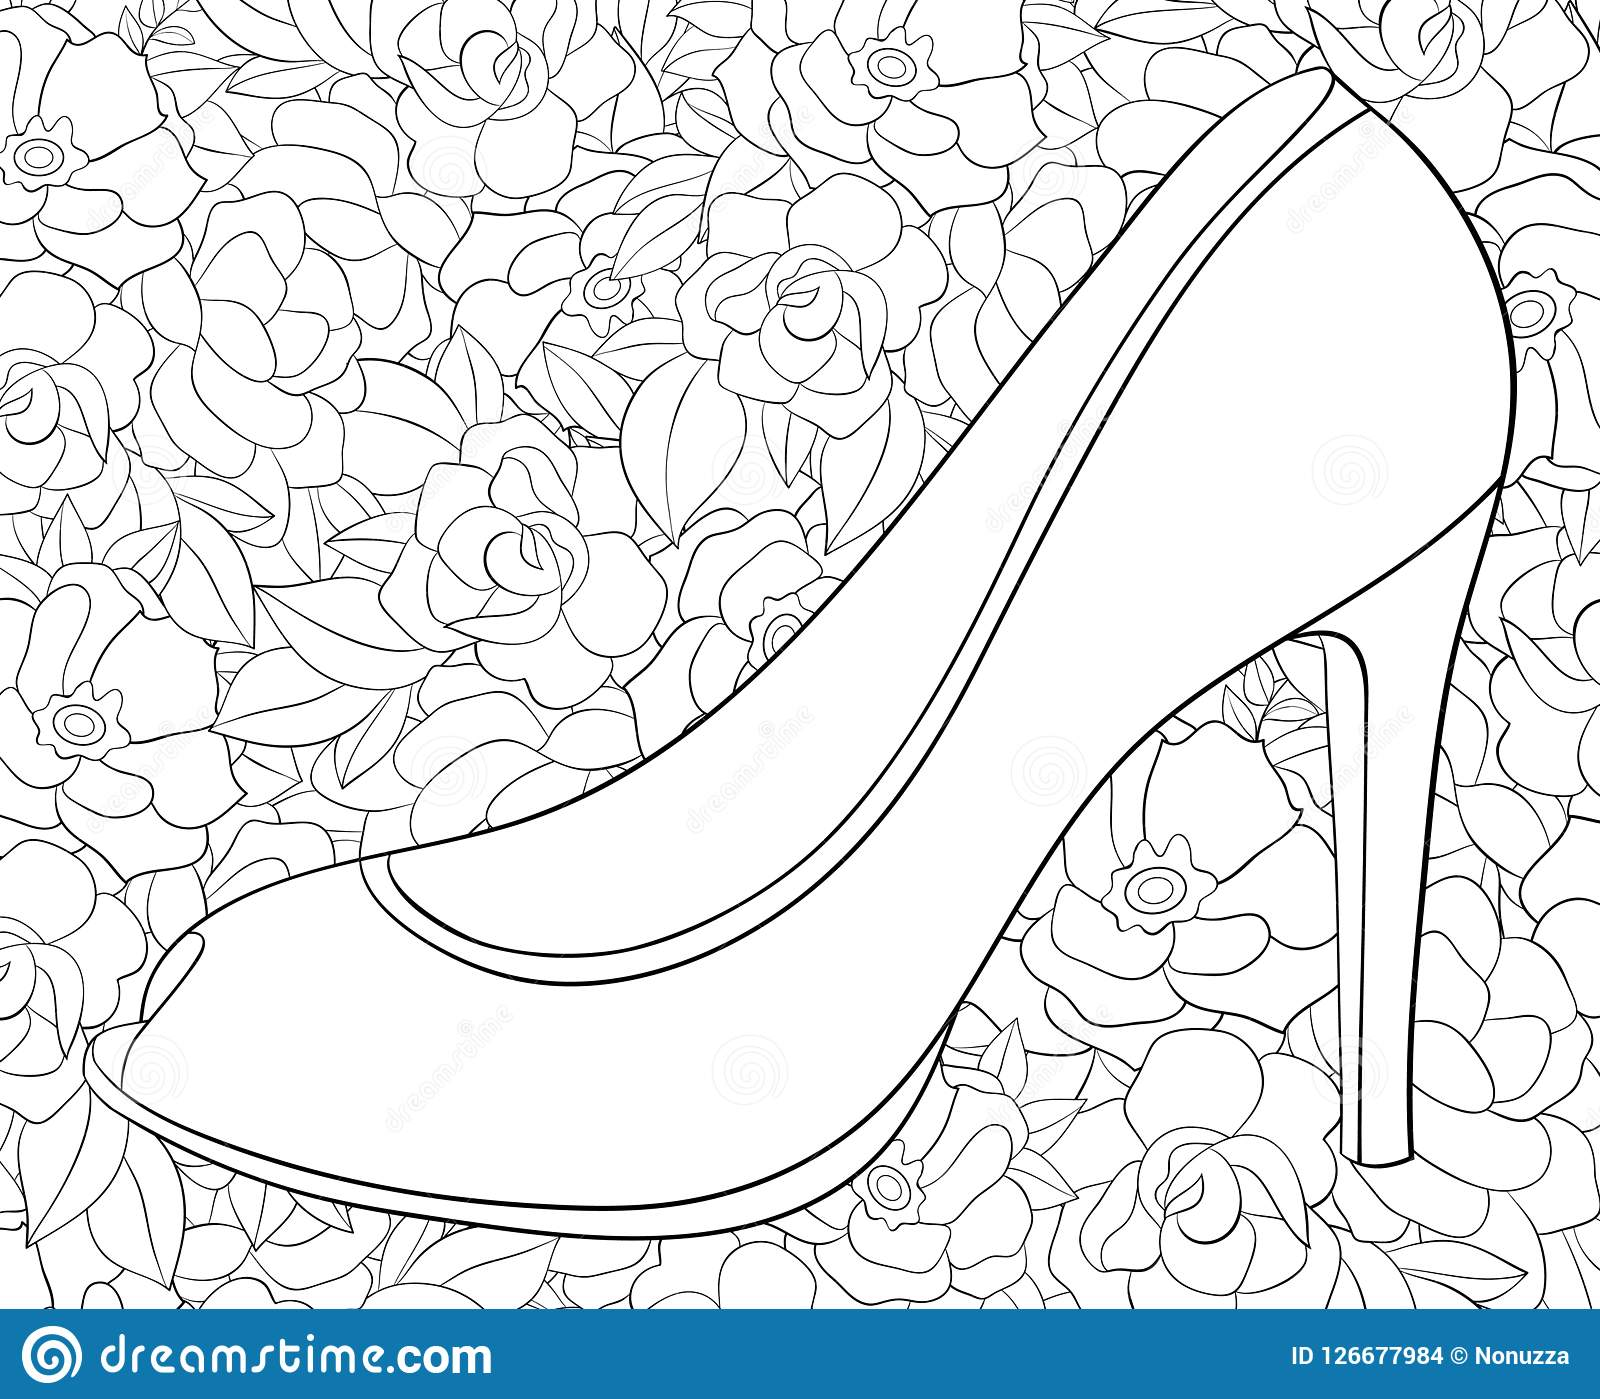 Adult Coloring Book Page A Shoe With High Heel Image For